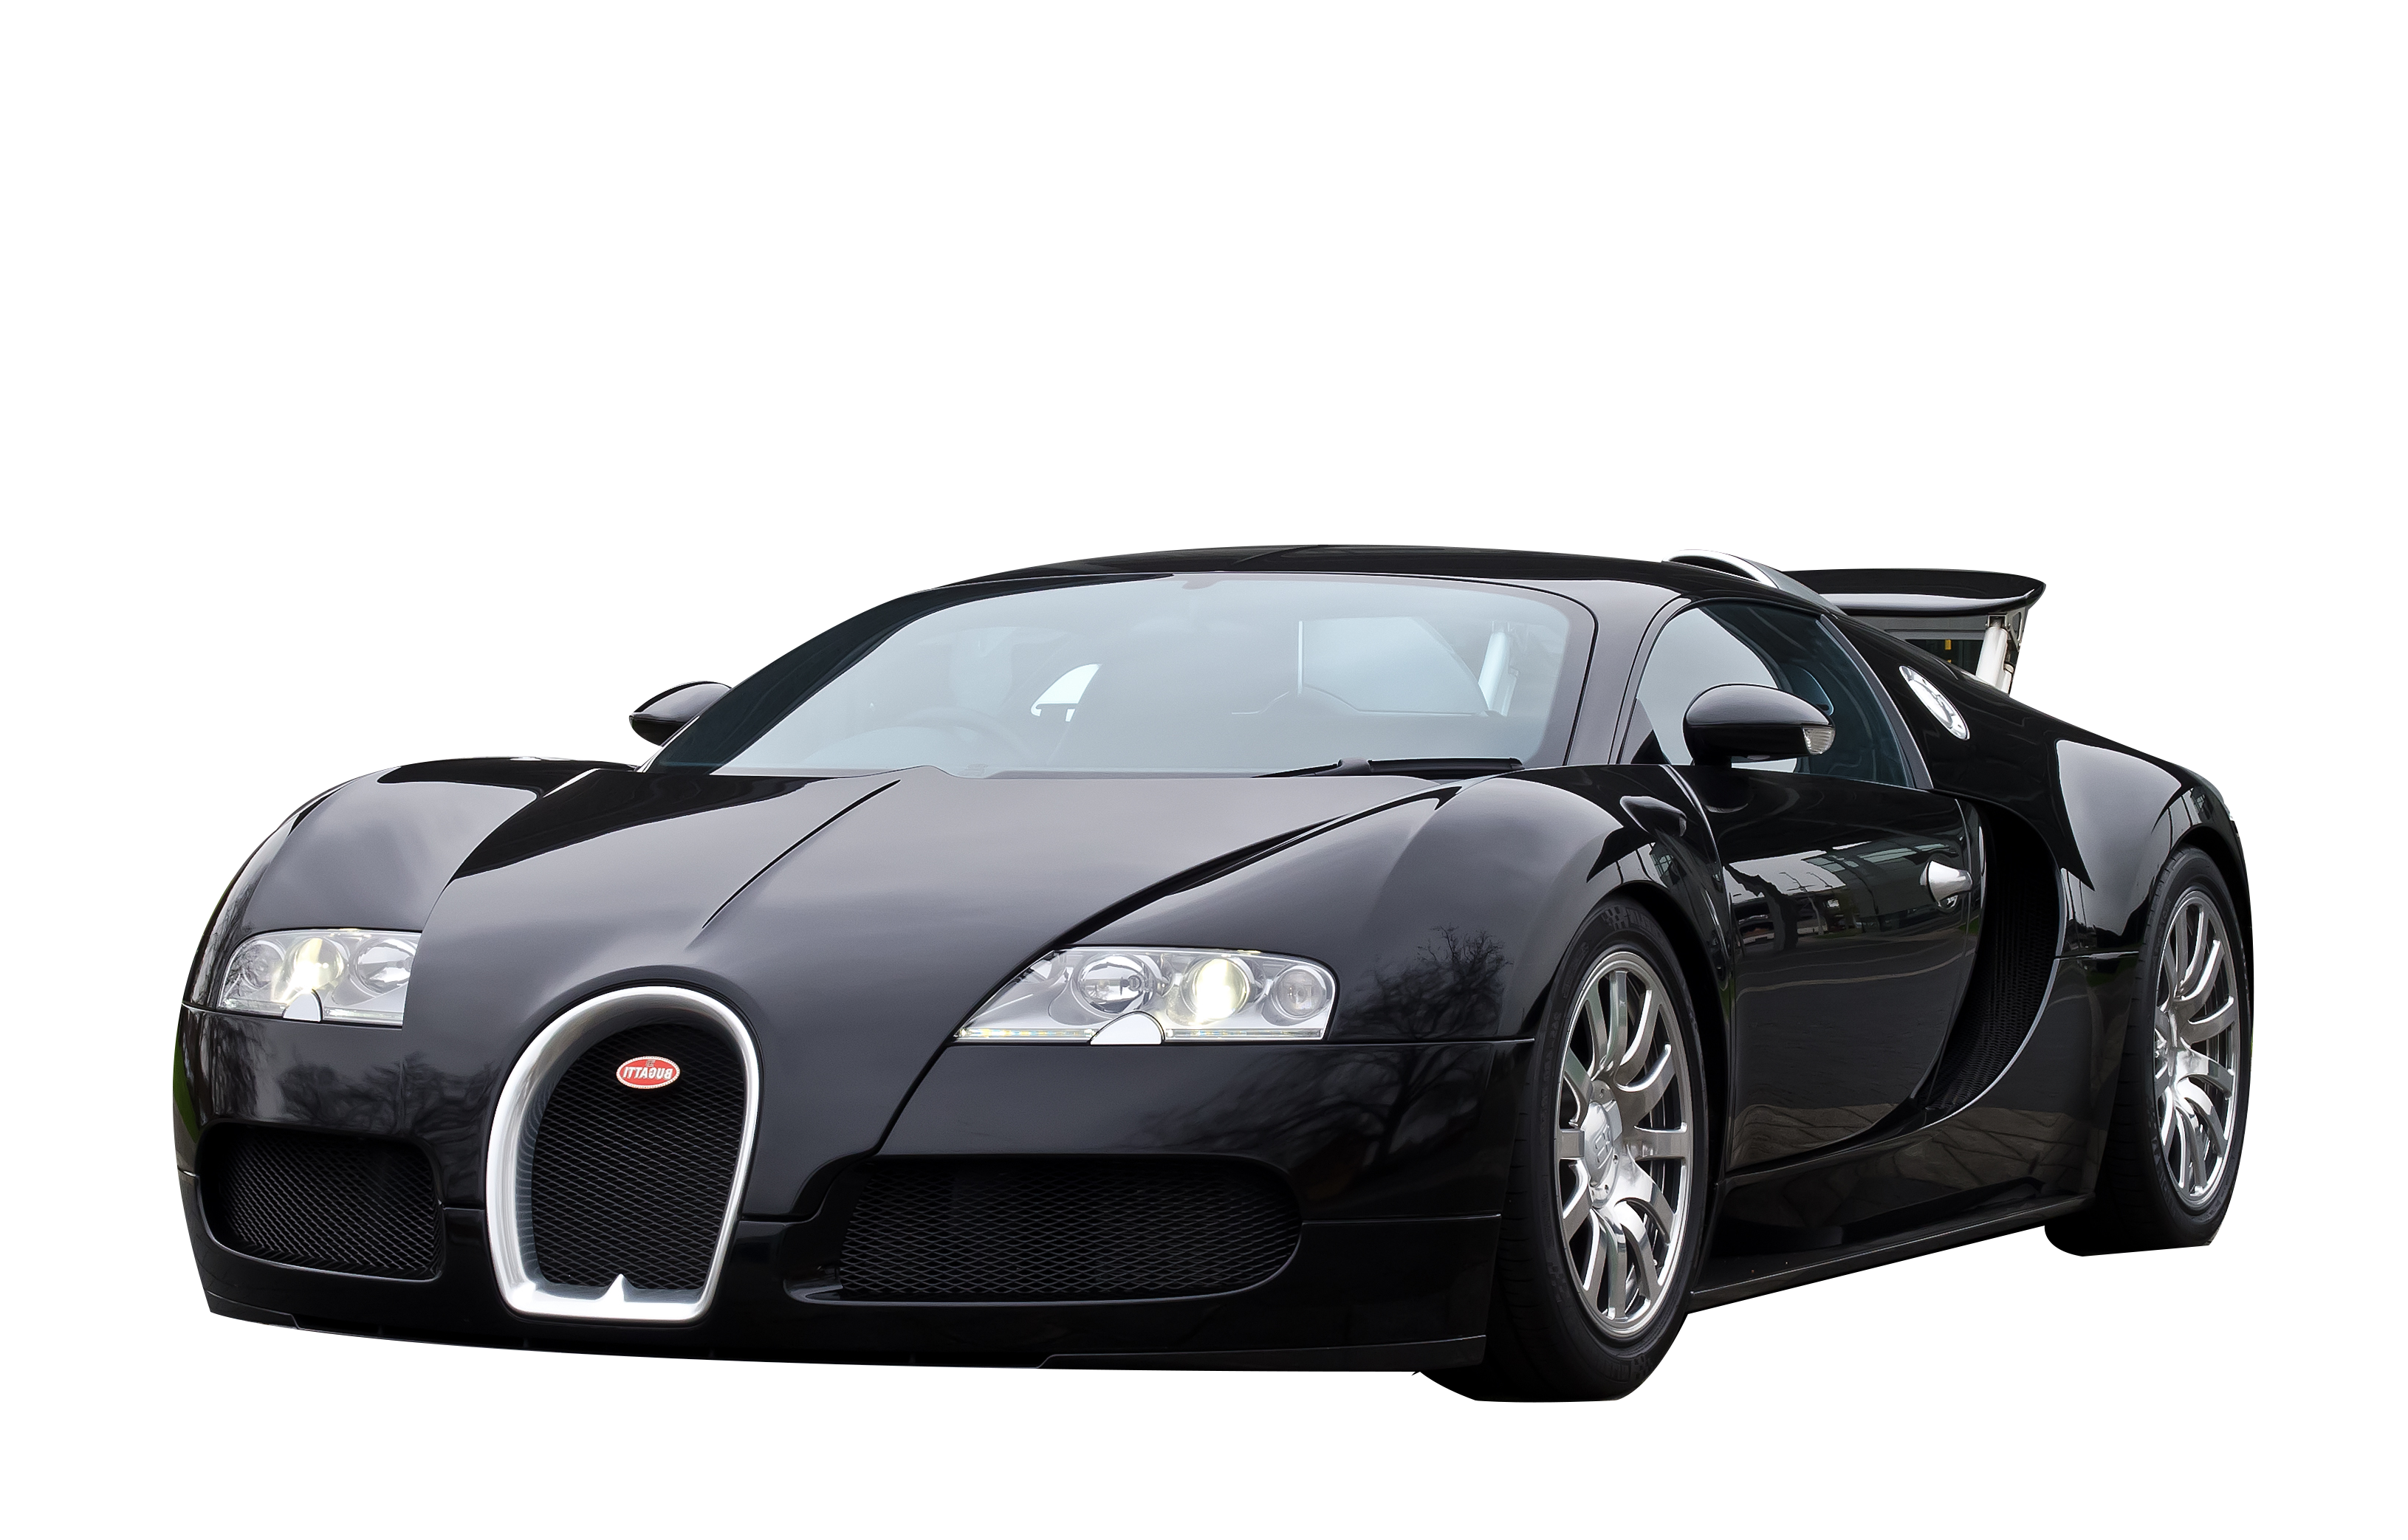 High End Car Rentals In New York